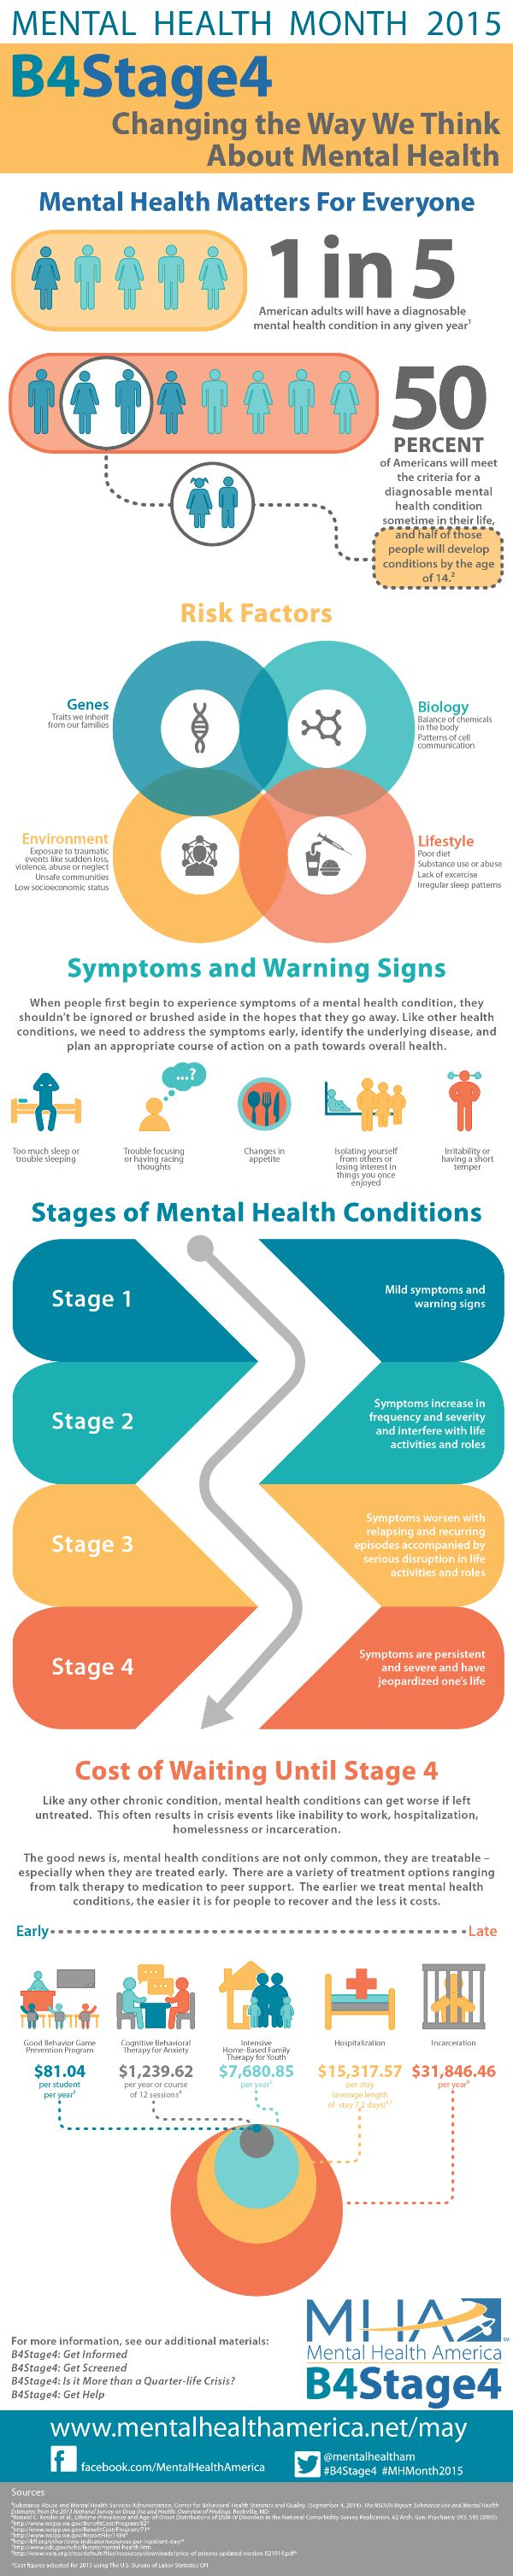 Infographic: Let's change the way we think about mental health #mentalhealth #infographics #hcmktg